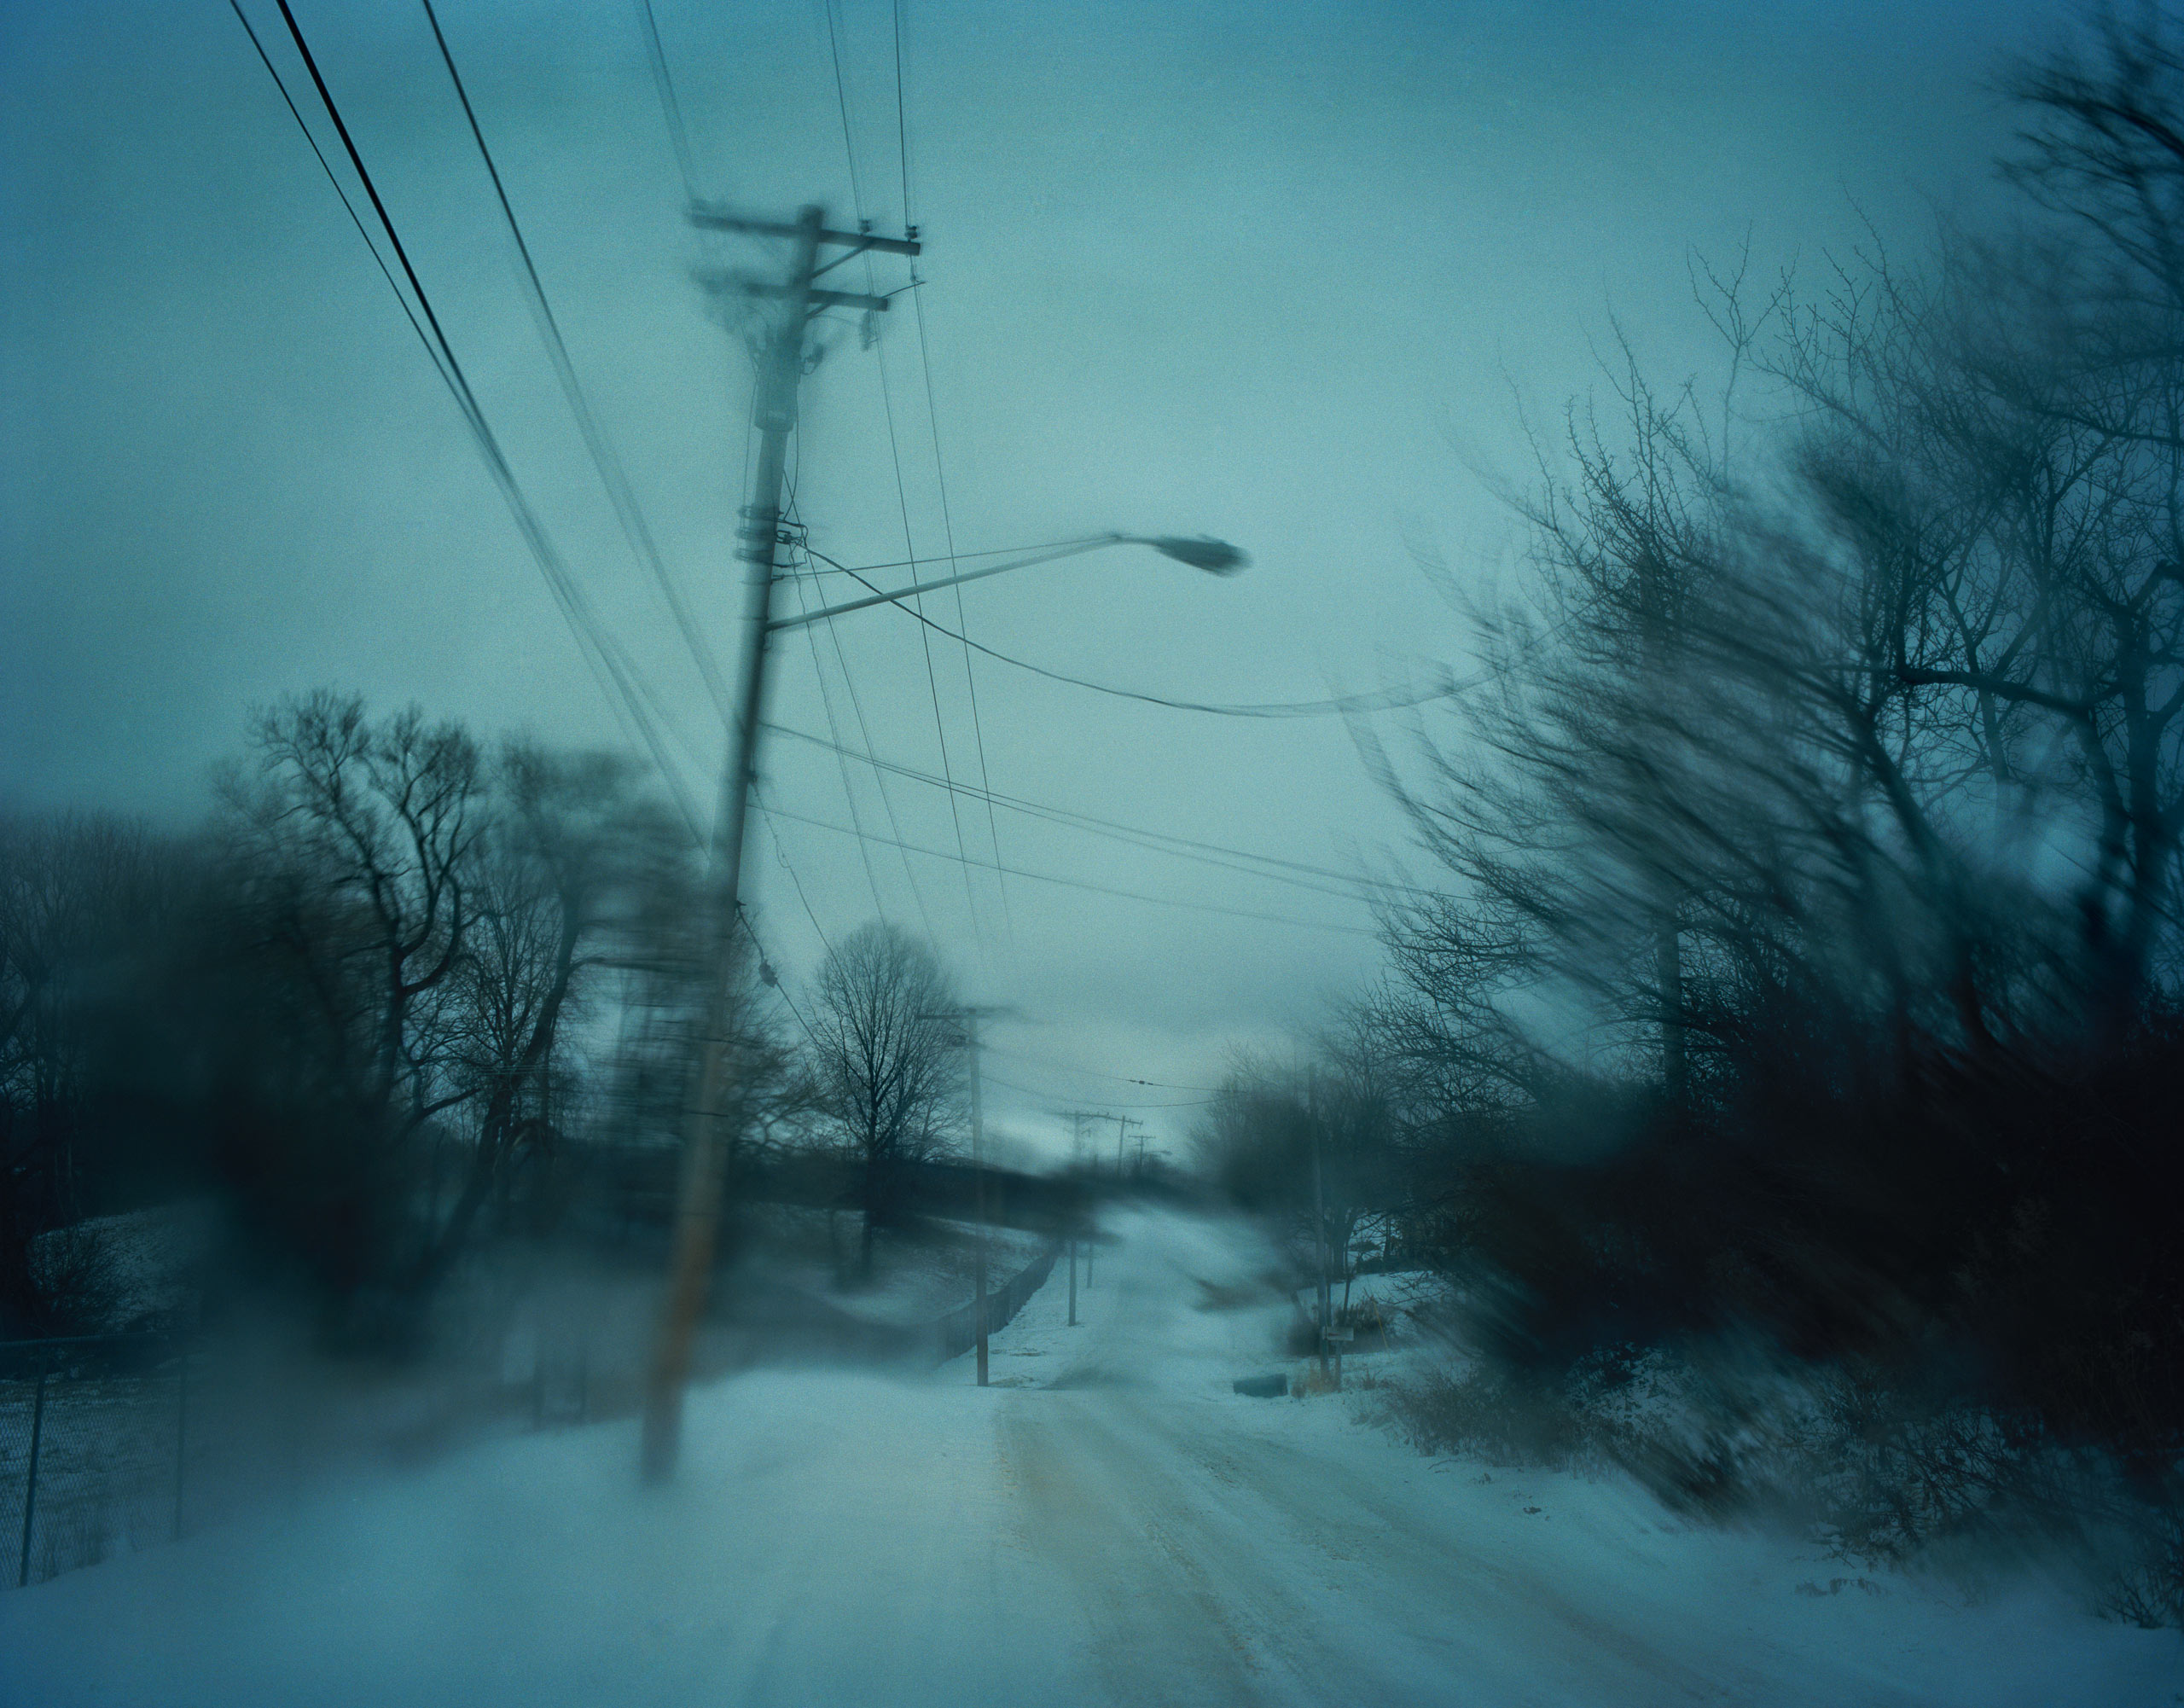 Todd Hido has recently added digital cameras to his equipment. Still he uses three to four cameras, both analog and digital, when shooting, for the different aesthetics they present.                               For this landscape photograph, Hido used an analog camera, a Pentax 67.